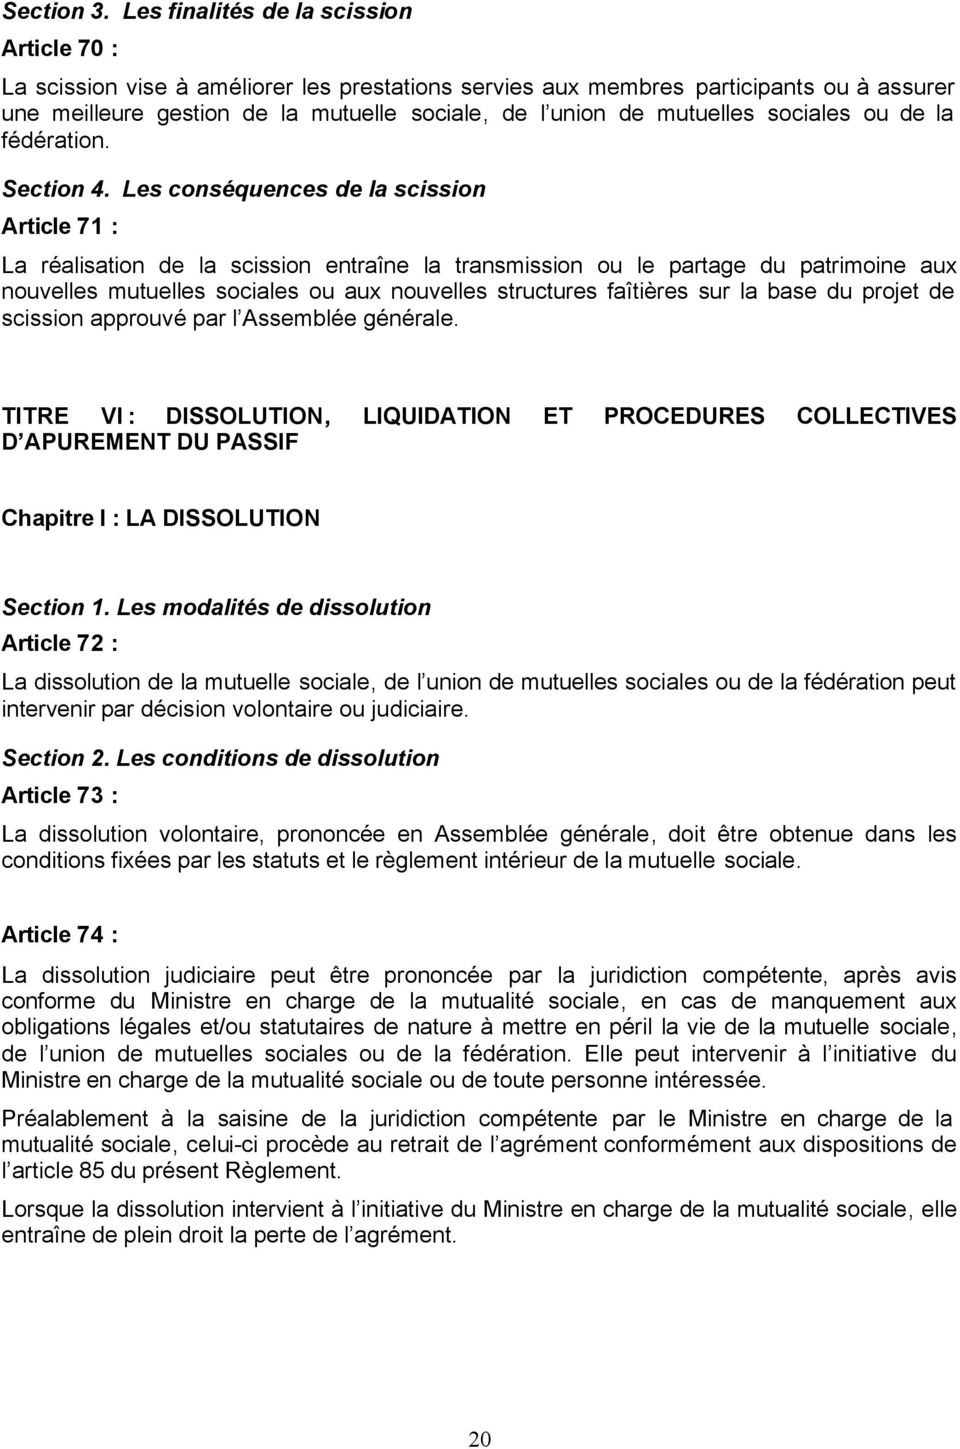 mutuelles sociales ou de la fédération. Section 4.